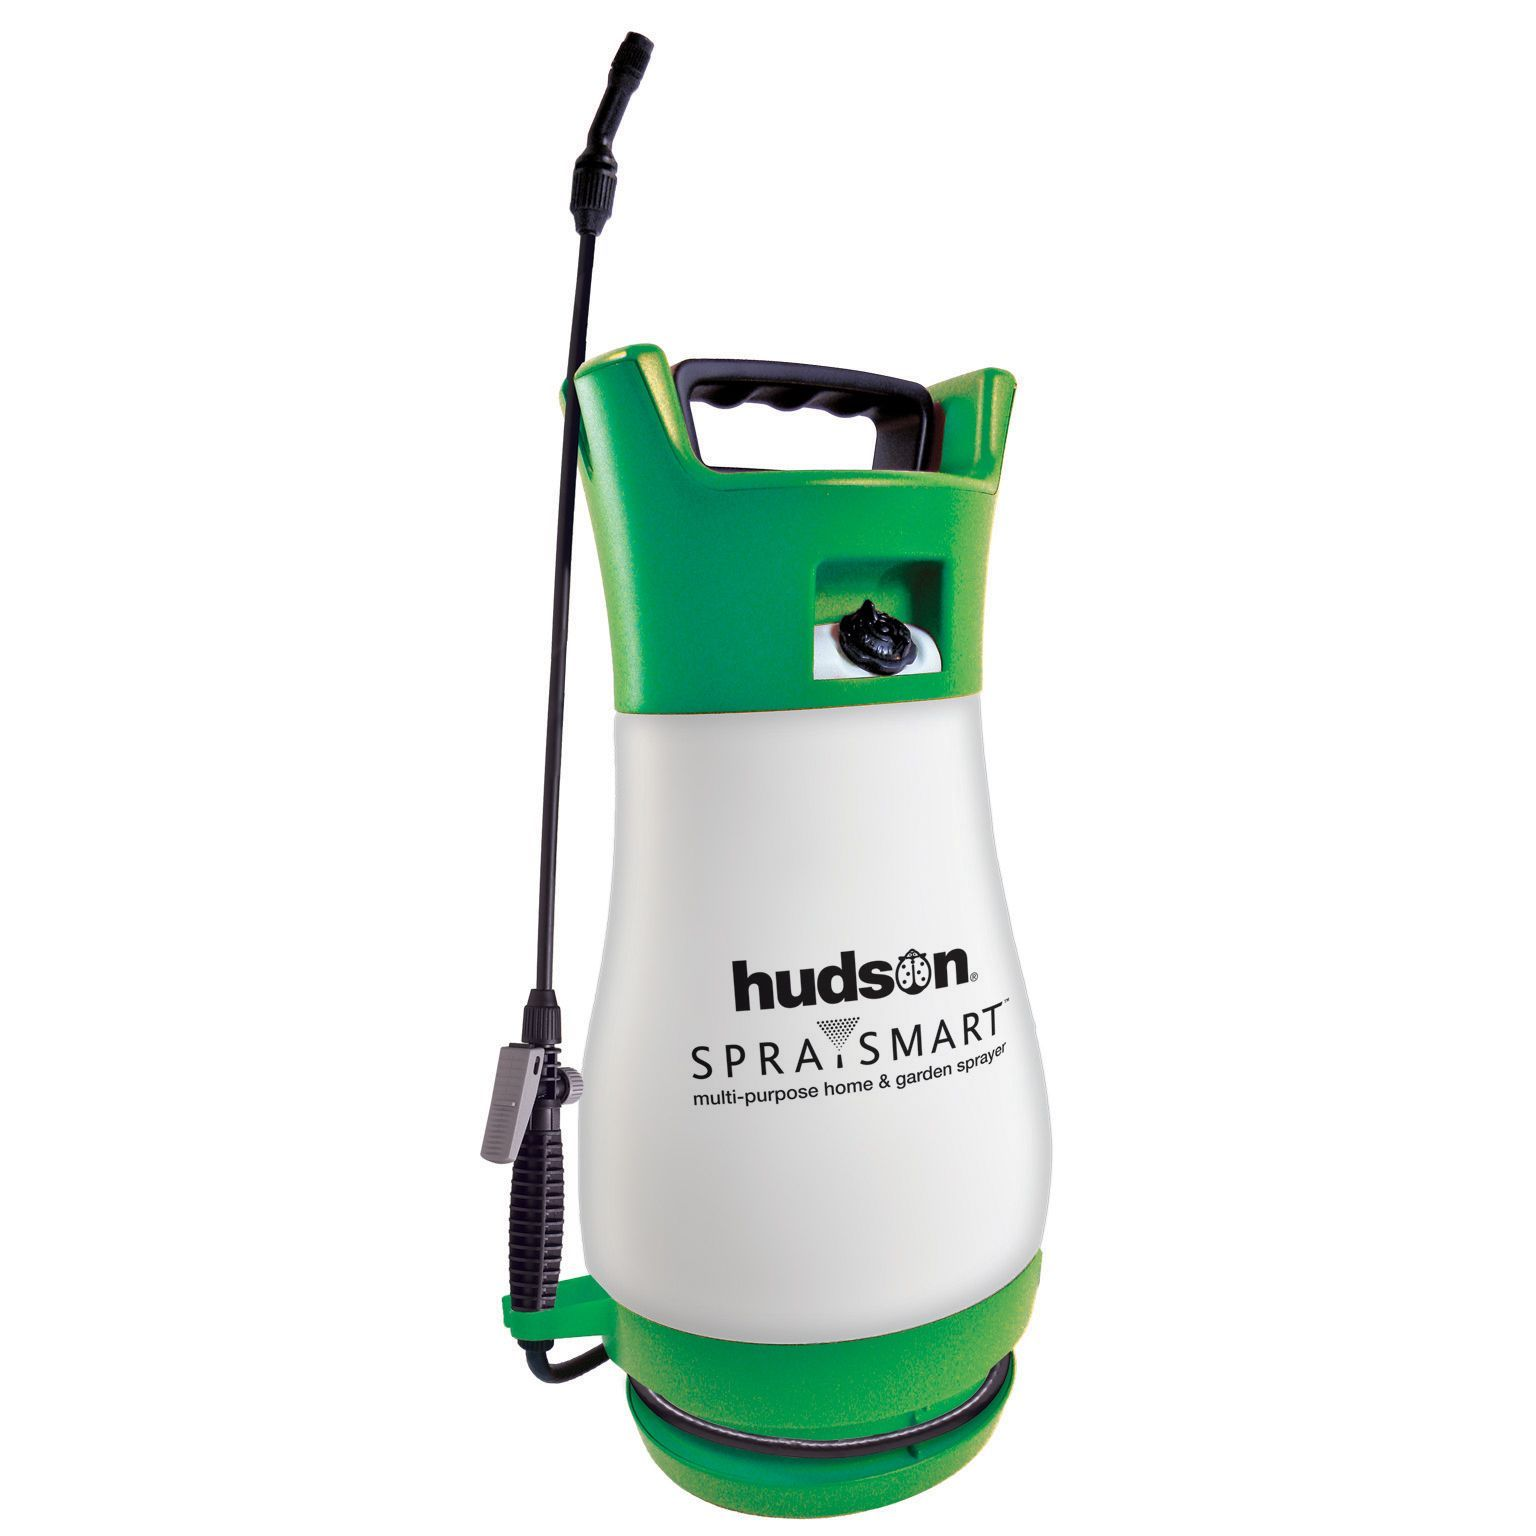 Hudson 77131 1 Gal Spray Smart Multi-Purpose Sprayer